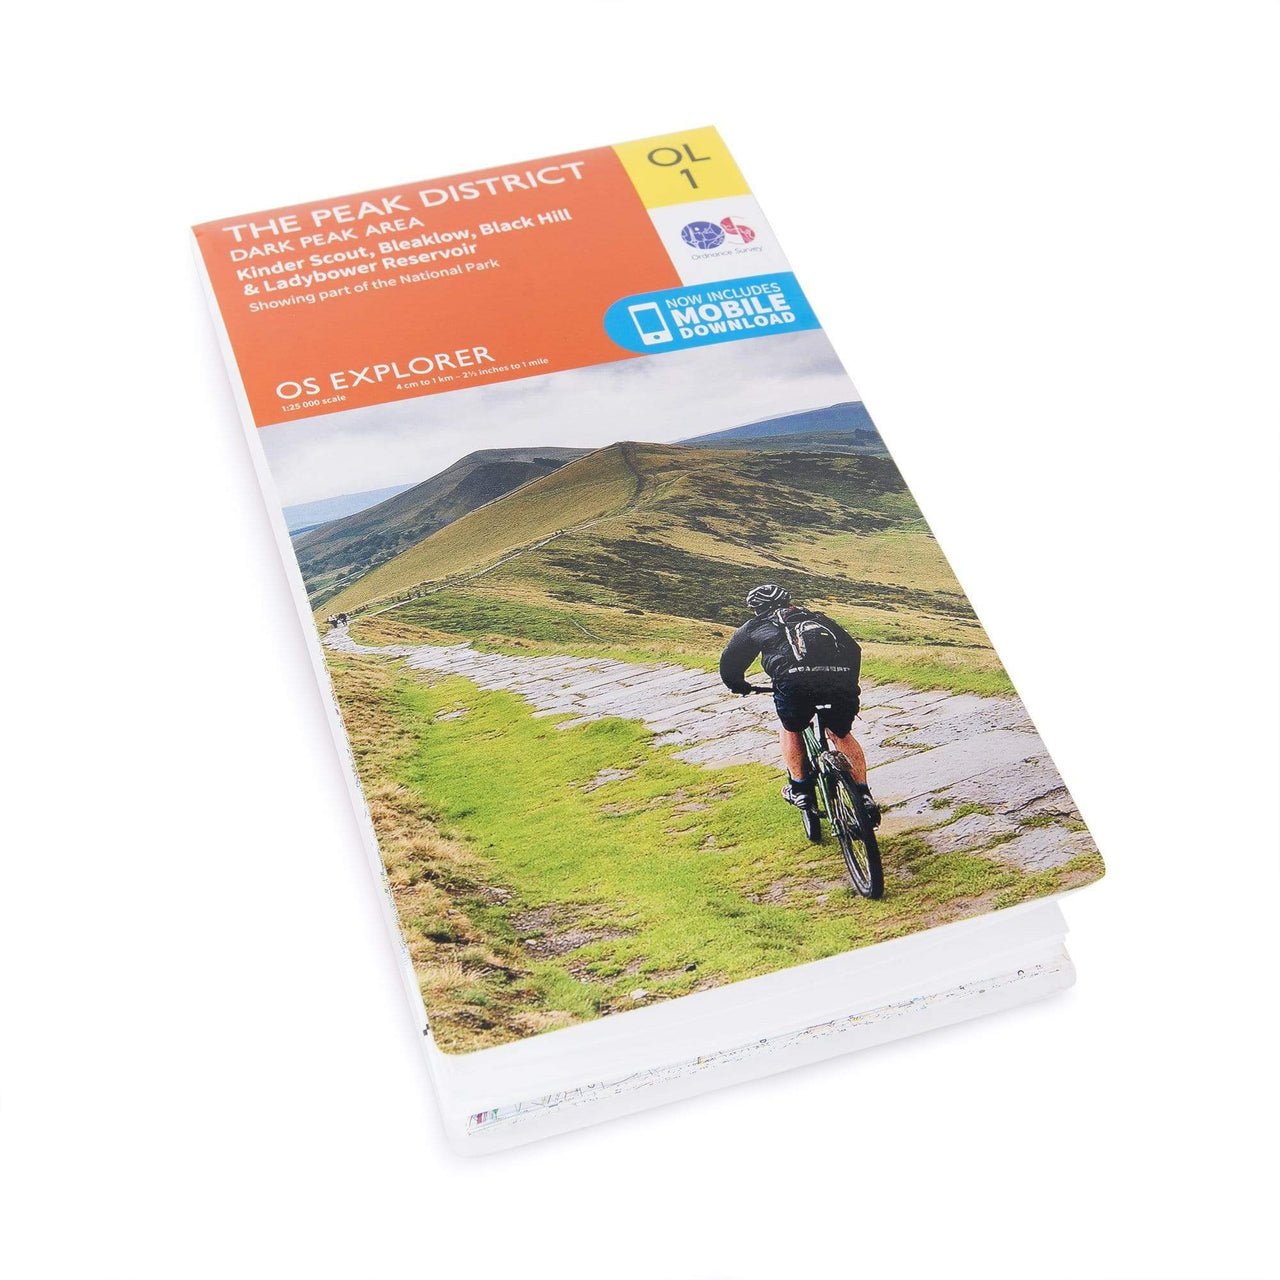 OS Explorer Maps: Peak District - Dark Peak